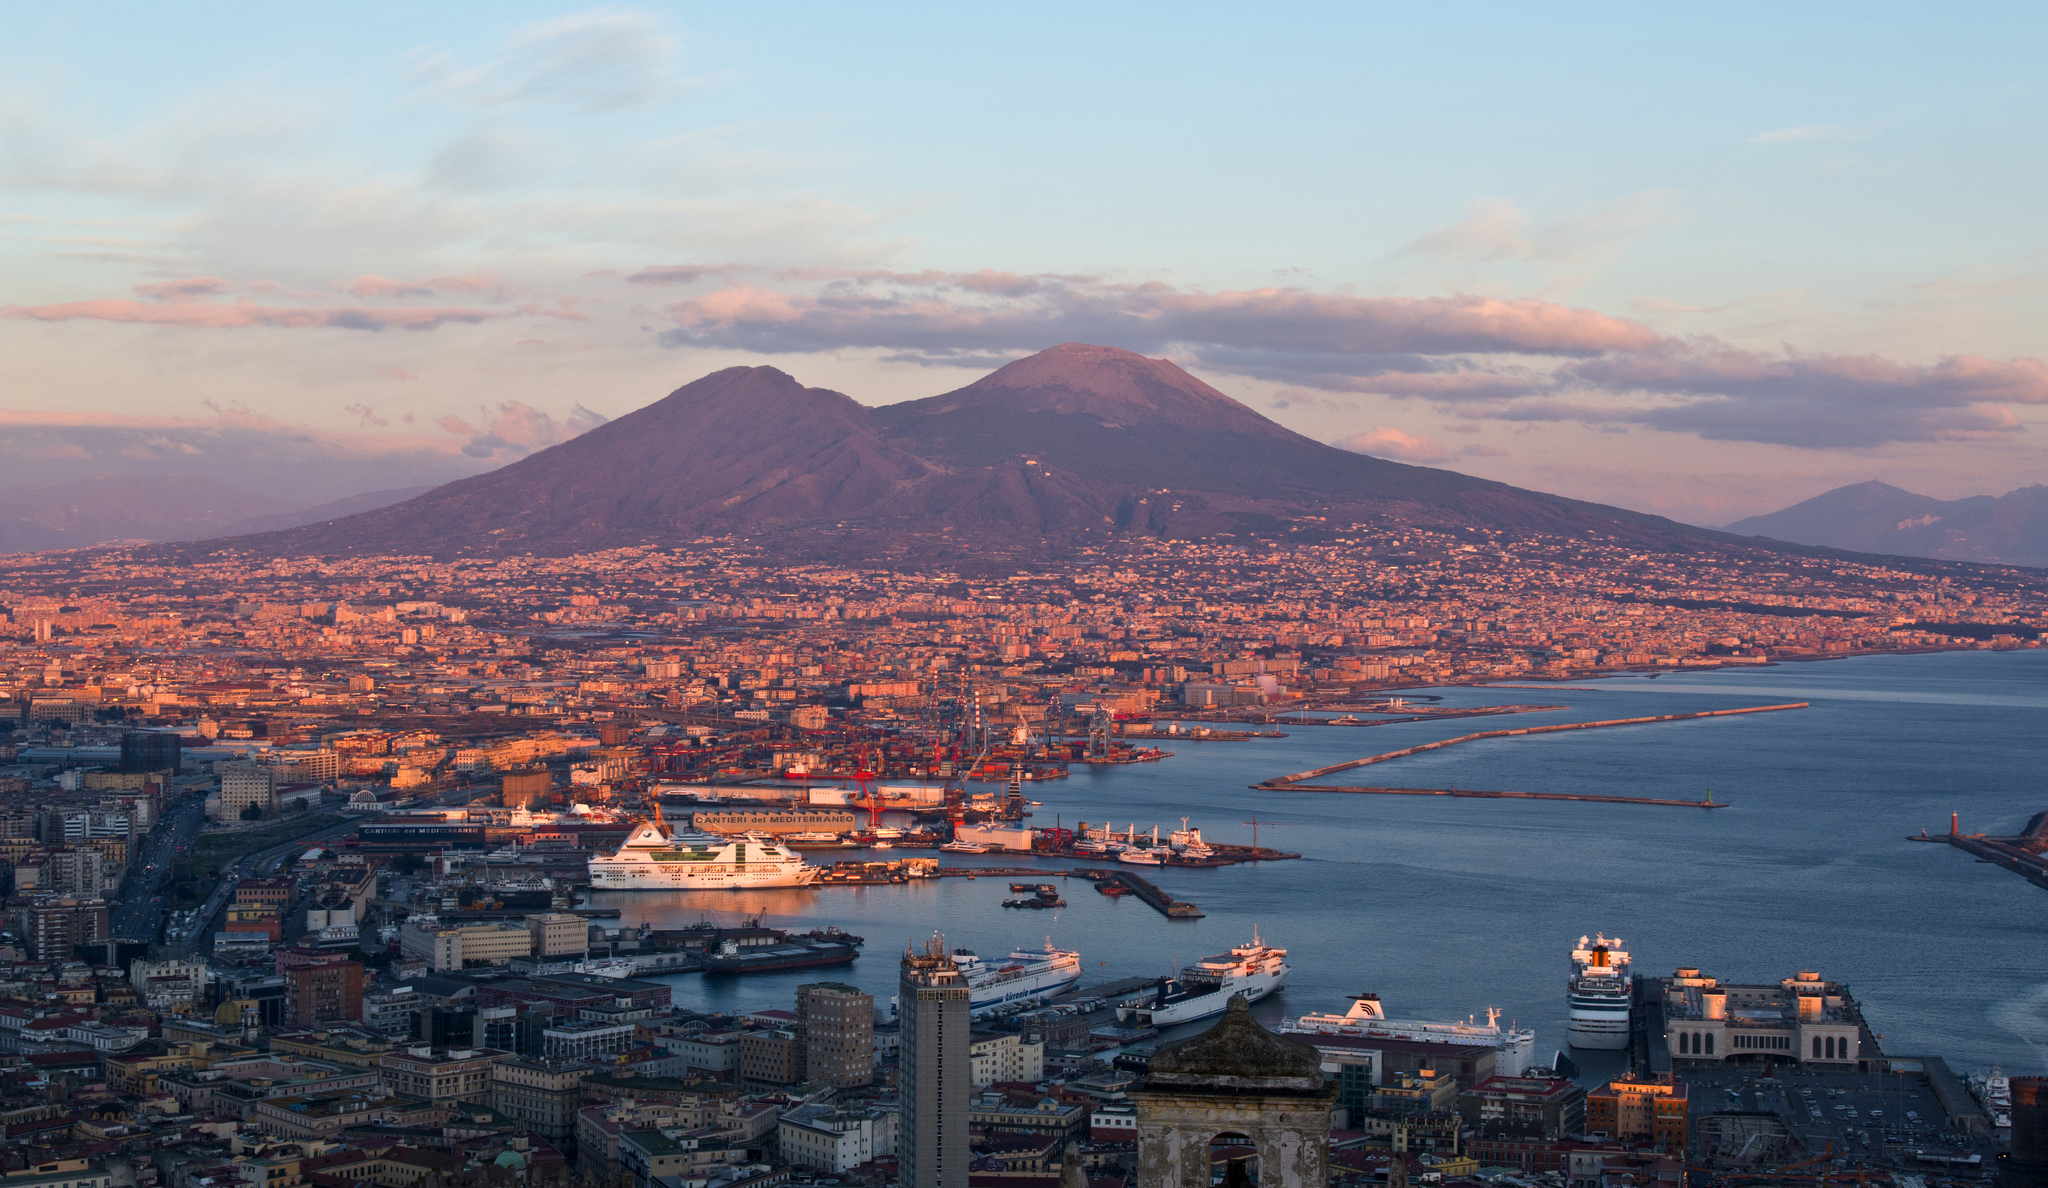 volcano mount vesuvius Vesuvius: mount vesuvius, active volcano near naples, italy, famous for its eruption in 79 that destroyed the roman cities of pompeii, stabiae, and herculaneum.